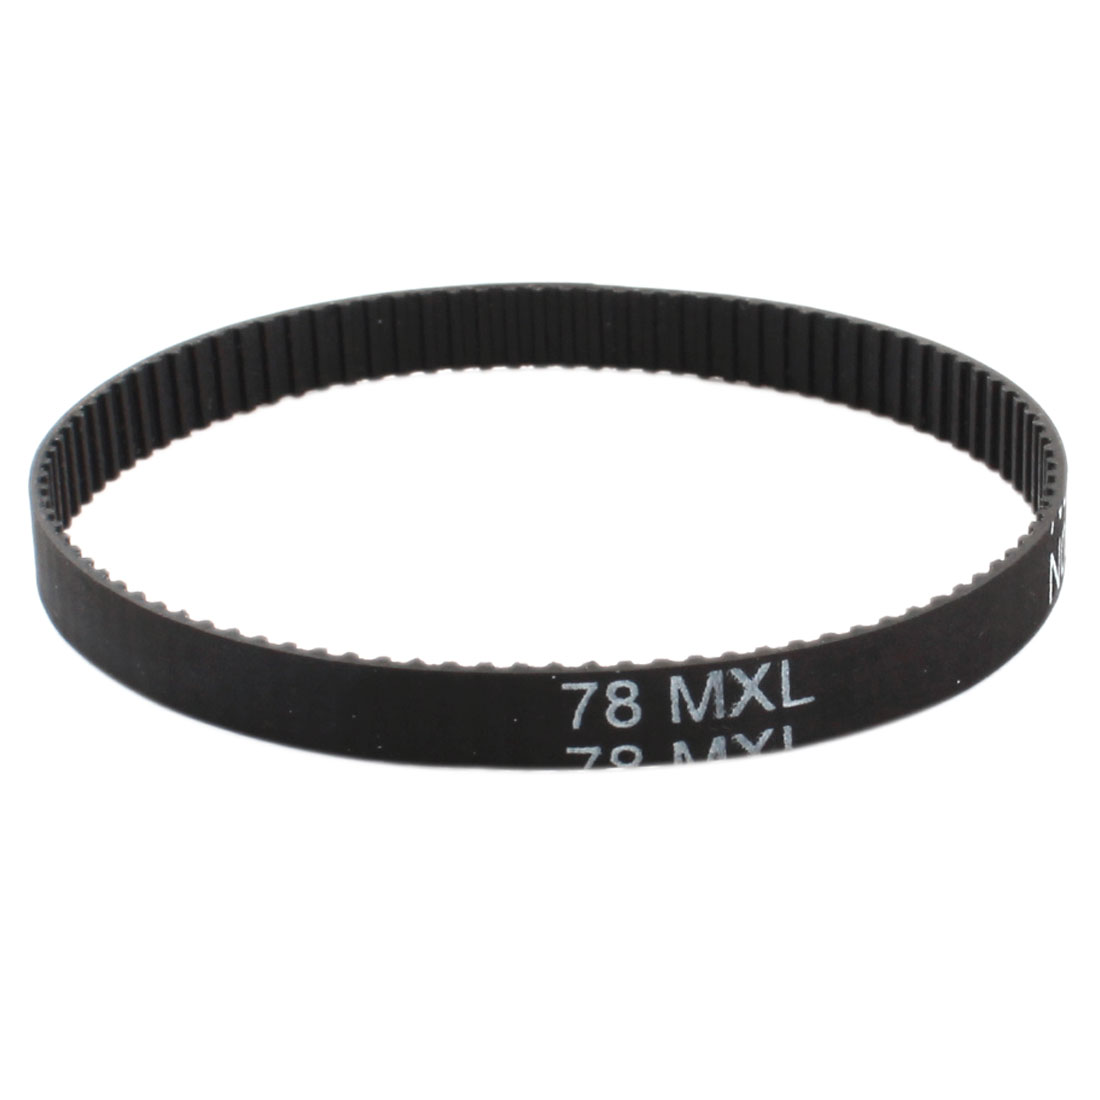 "78MXL025 98 Teeth 2.032mm Pitch 1/4"" Width Stepper Motor 3D Printer Black Groove Industrial Synchronous Timing Belt 199.14mm Girth"